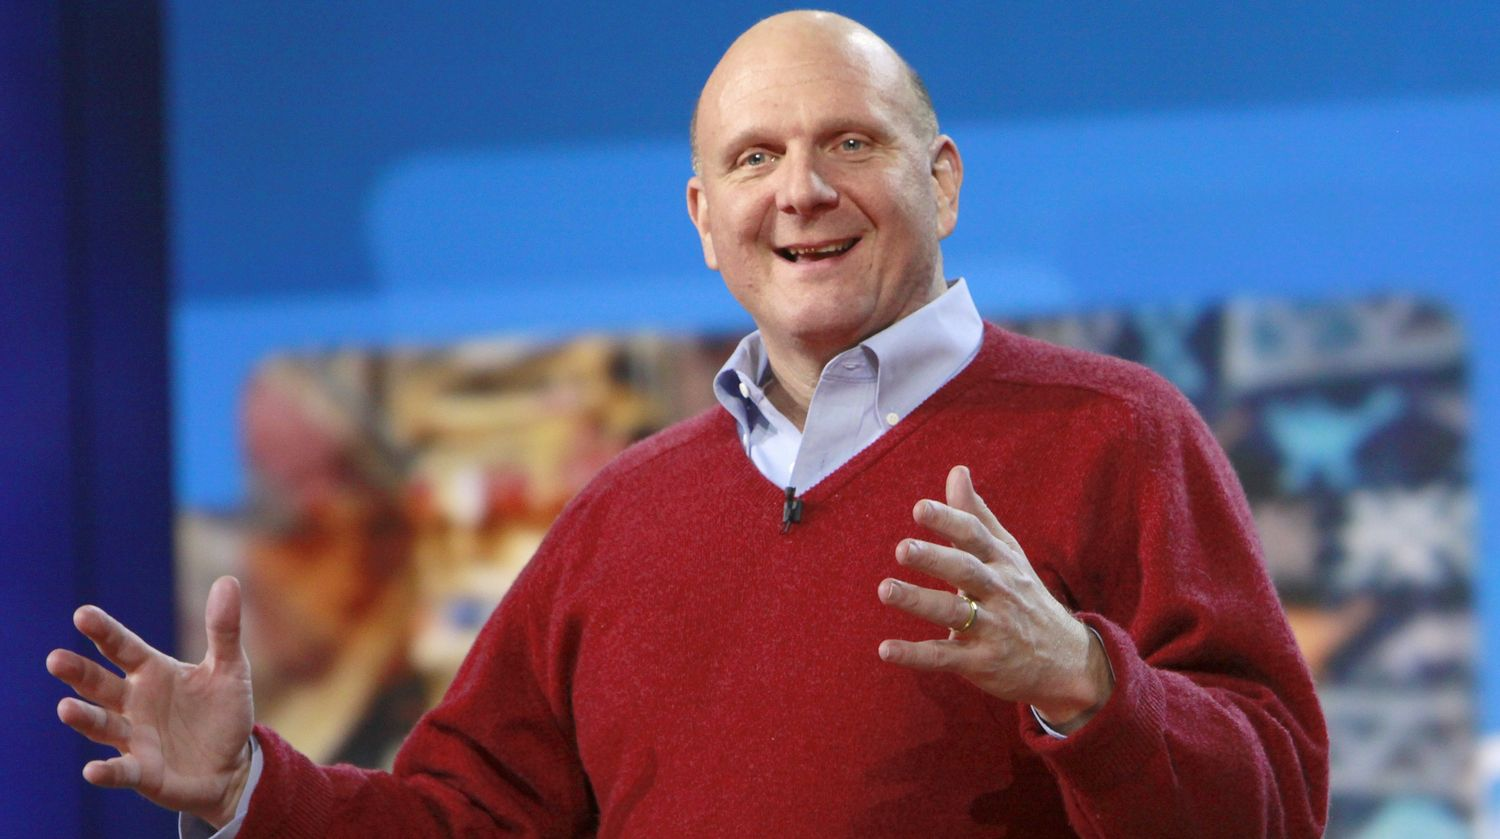 Steve Ballmer found out where the money of American taxpayers